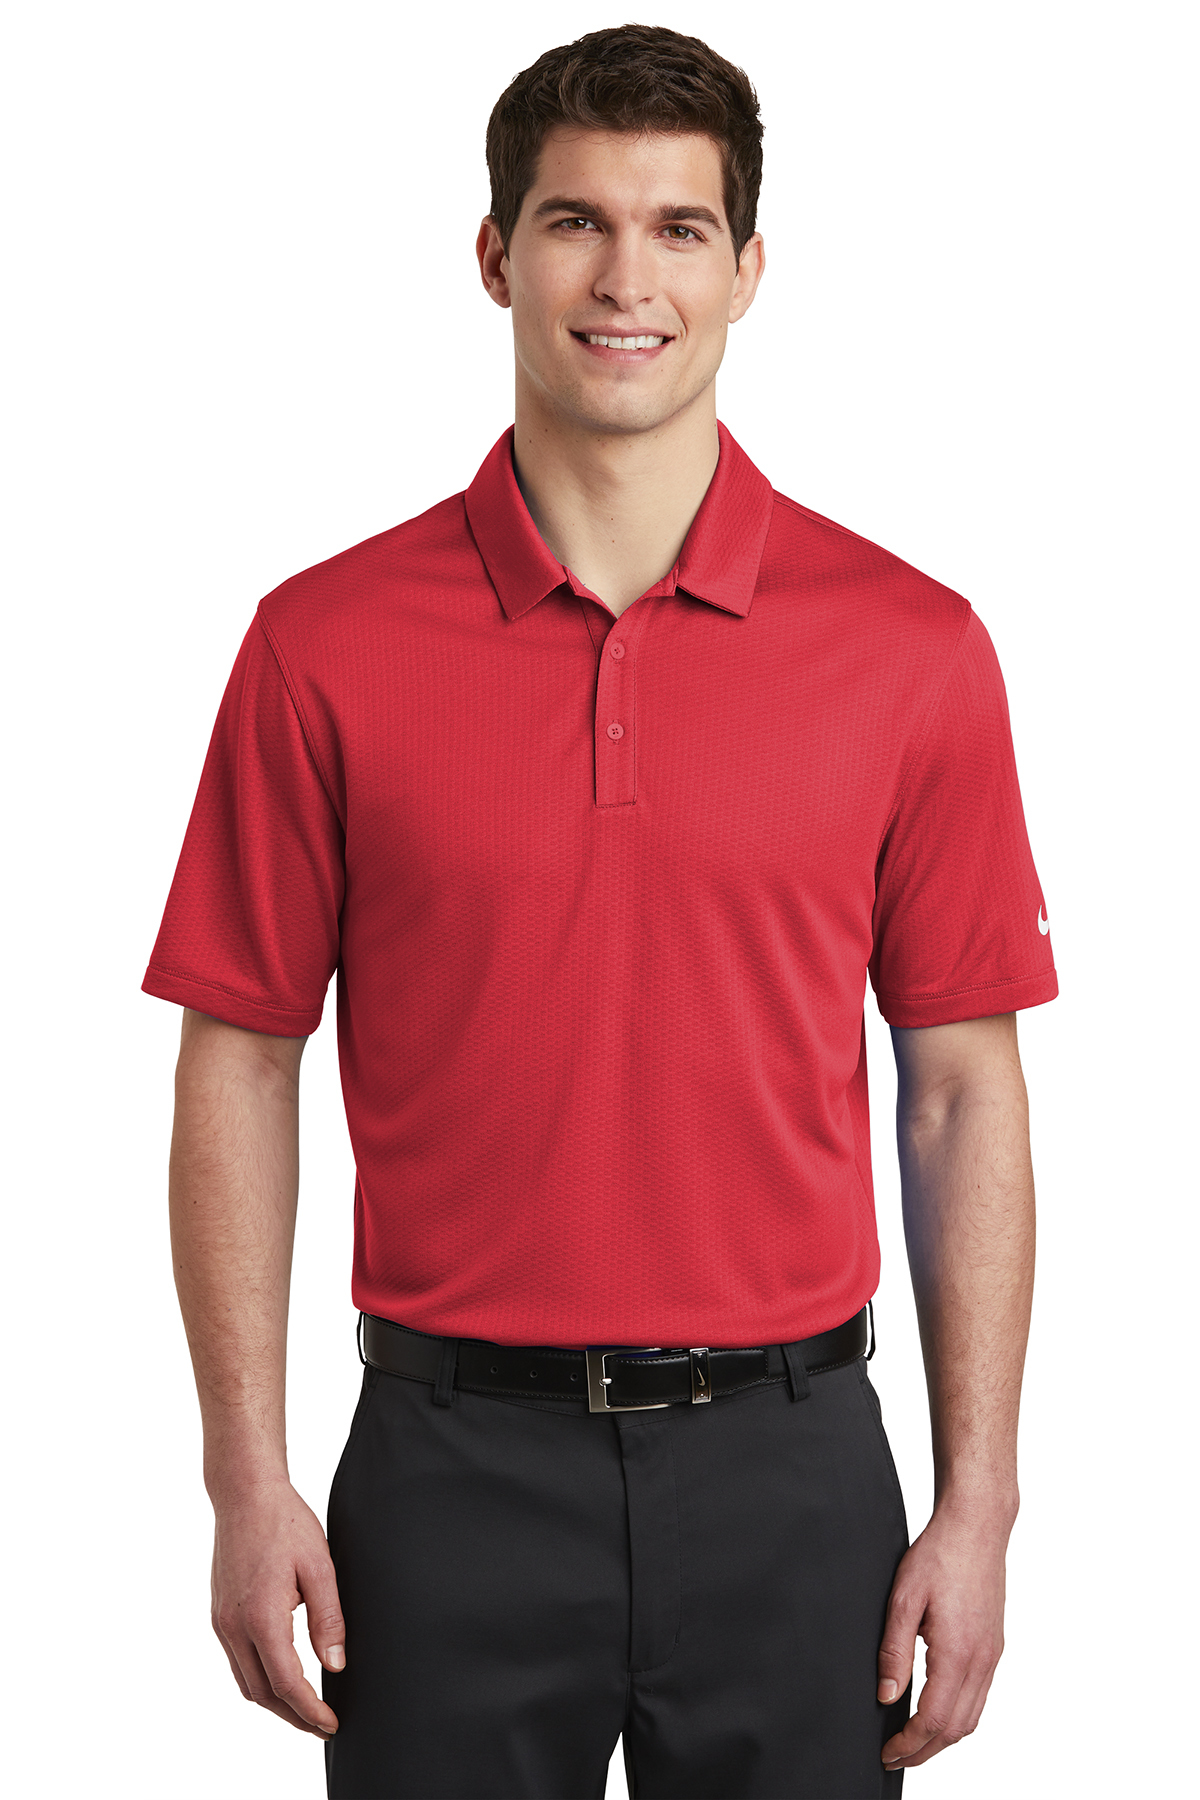 Nike Golf NKAH6266 - Men's Dri-FIT Hex Textured Polo